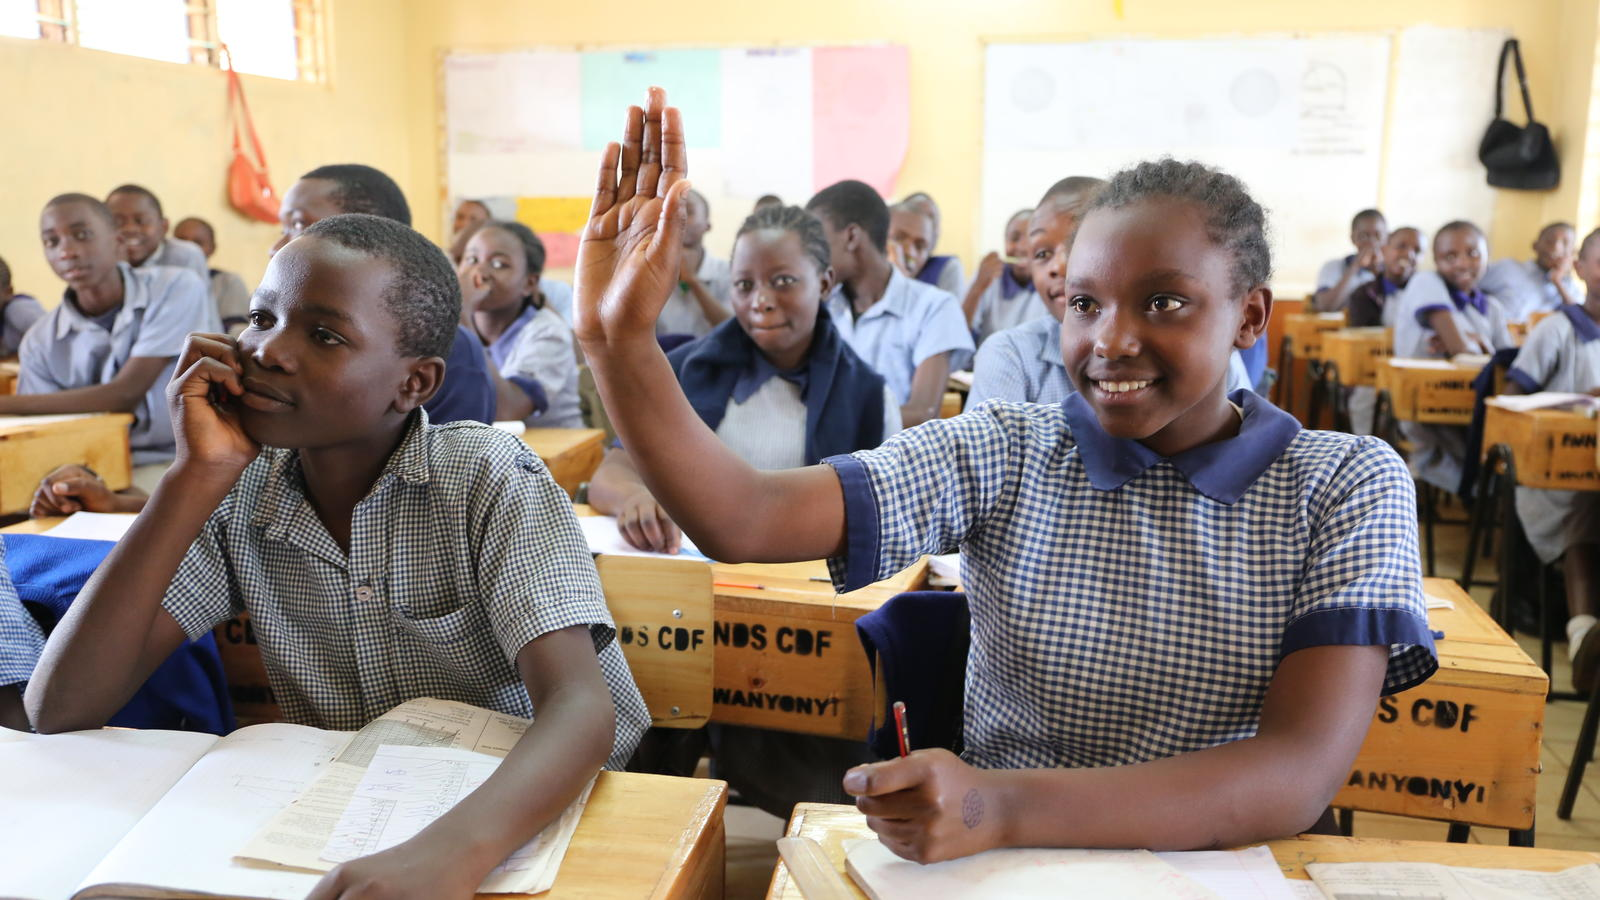 Brenda Nduta, 13, front row right, is eighth grade student and senior member of the health club. Kangemi Primary School, Westlands, Nairobi, Kenya. October 2016